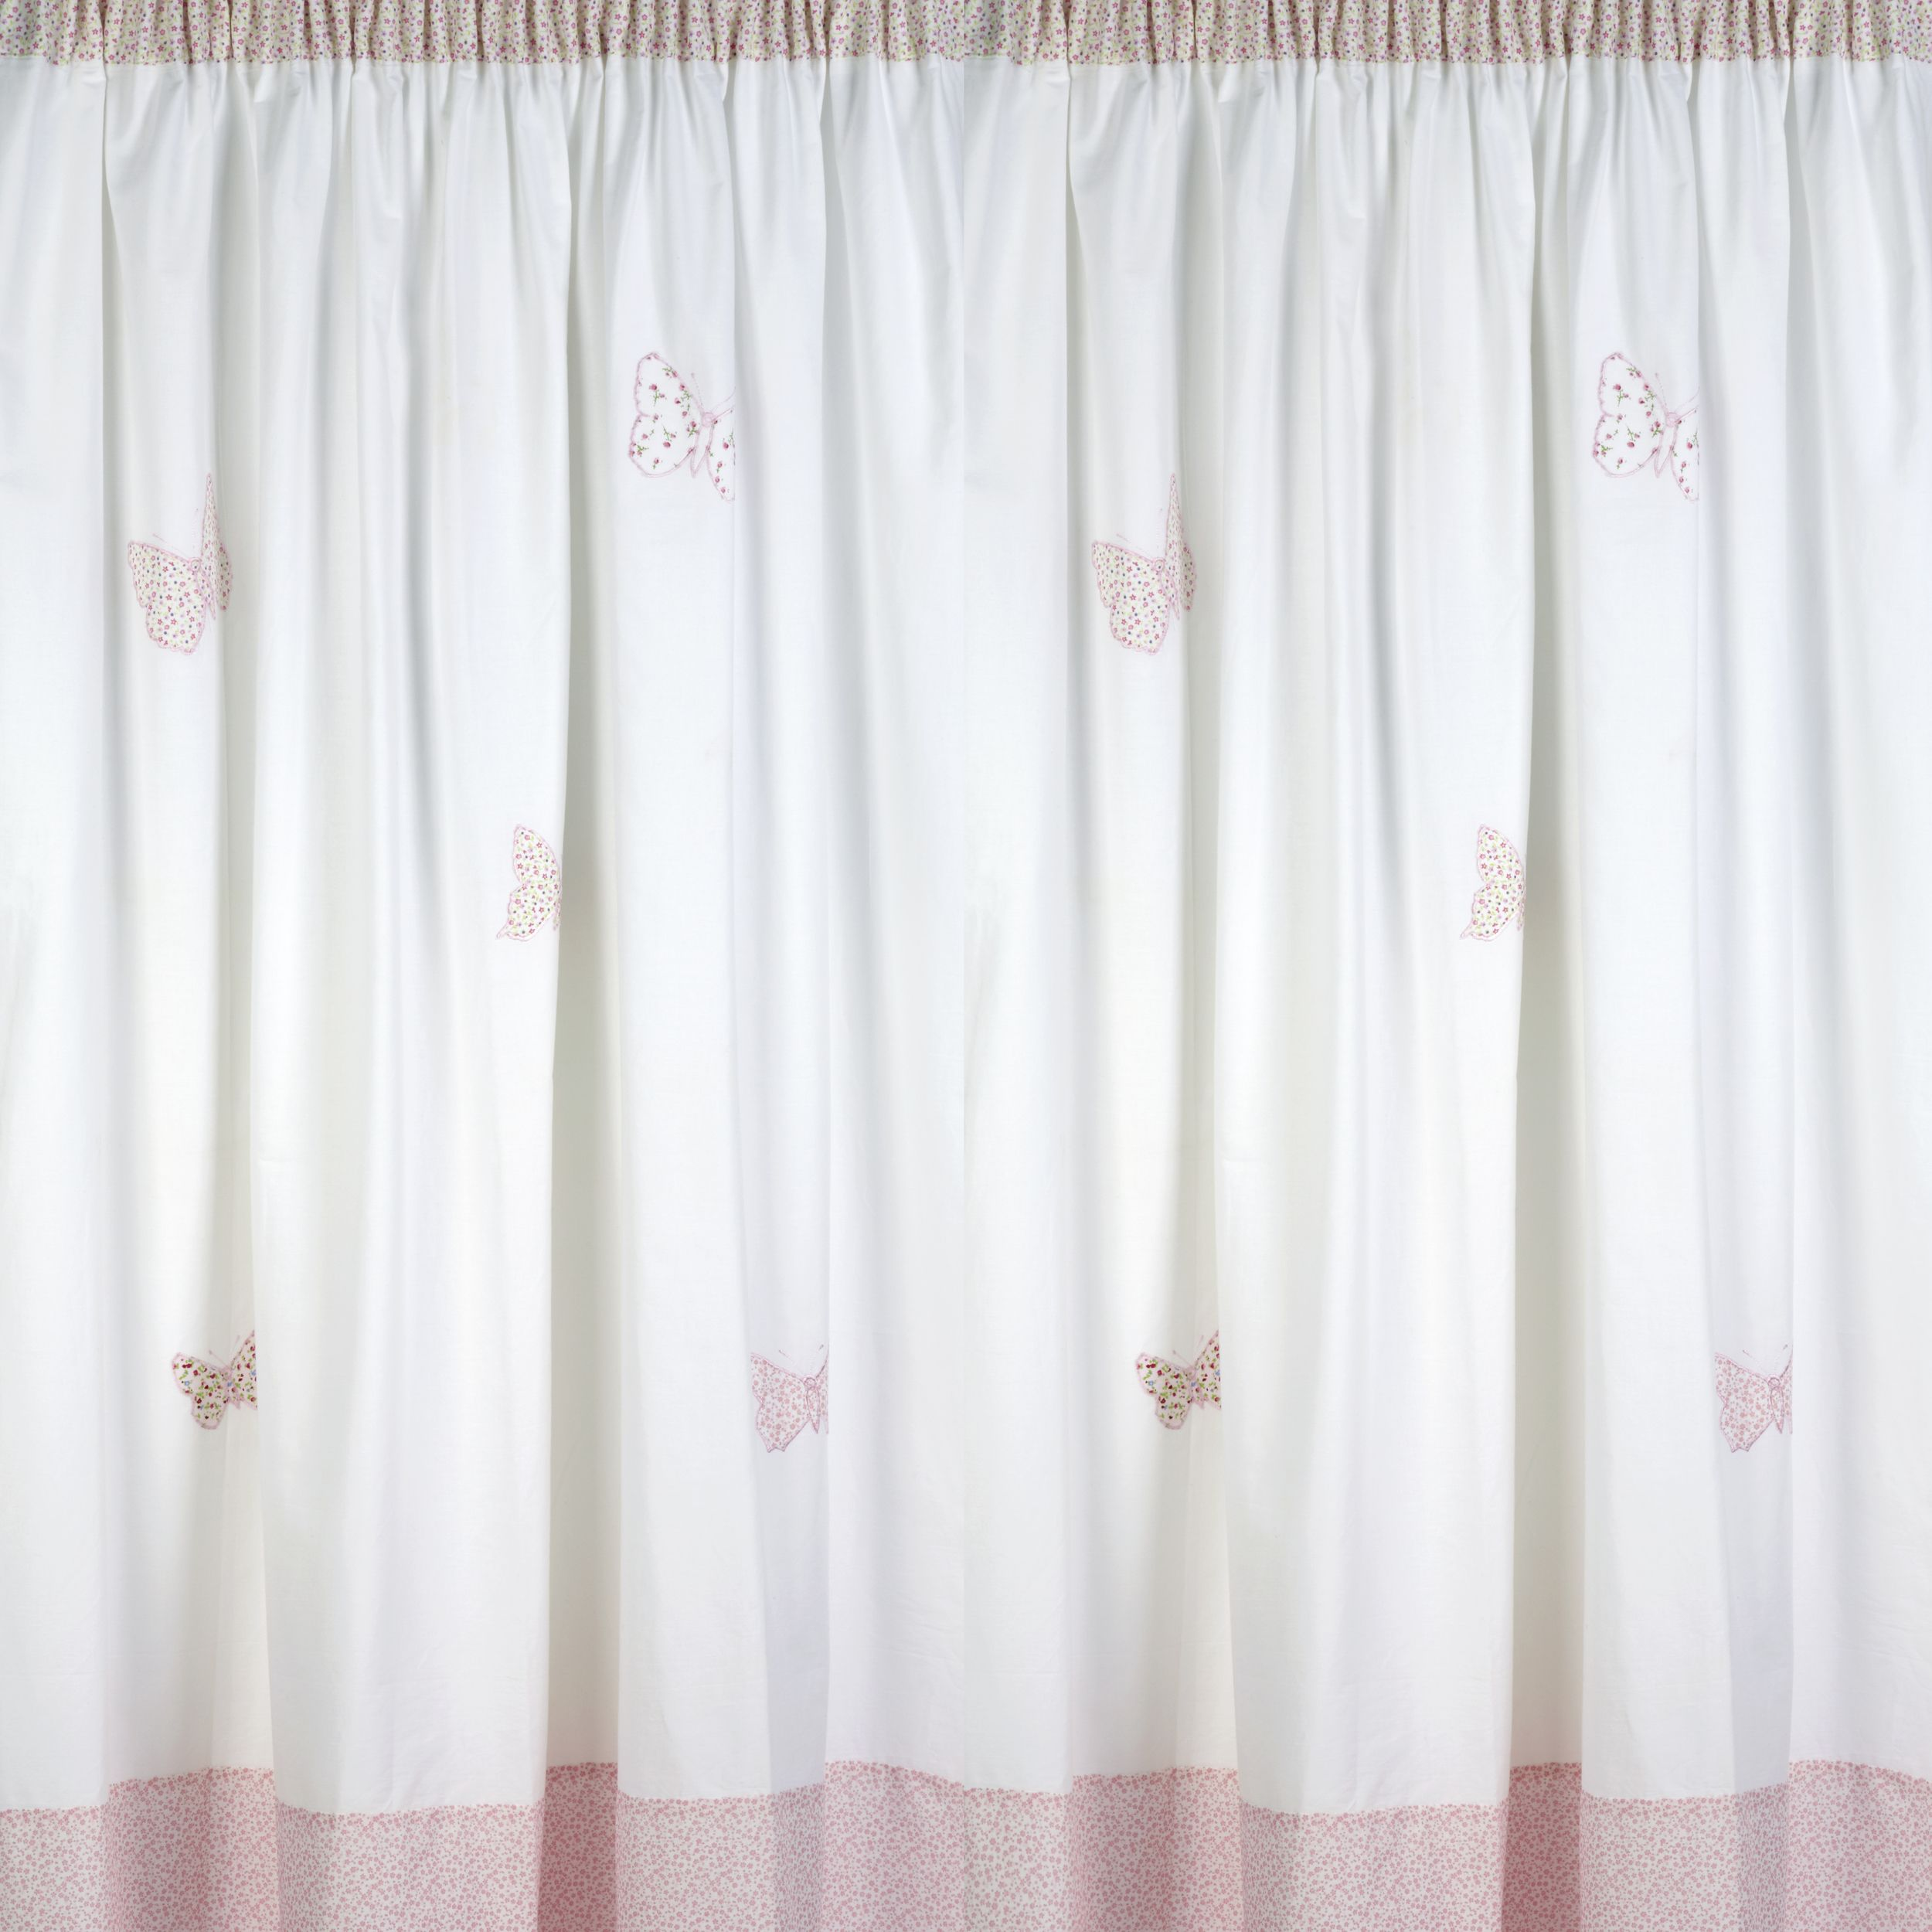 bedroom curtains bedding trend blackout toddler room children kids girl for top curtain designs and unbelievable tfile fascinating sets us pics ideas tab